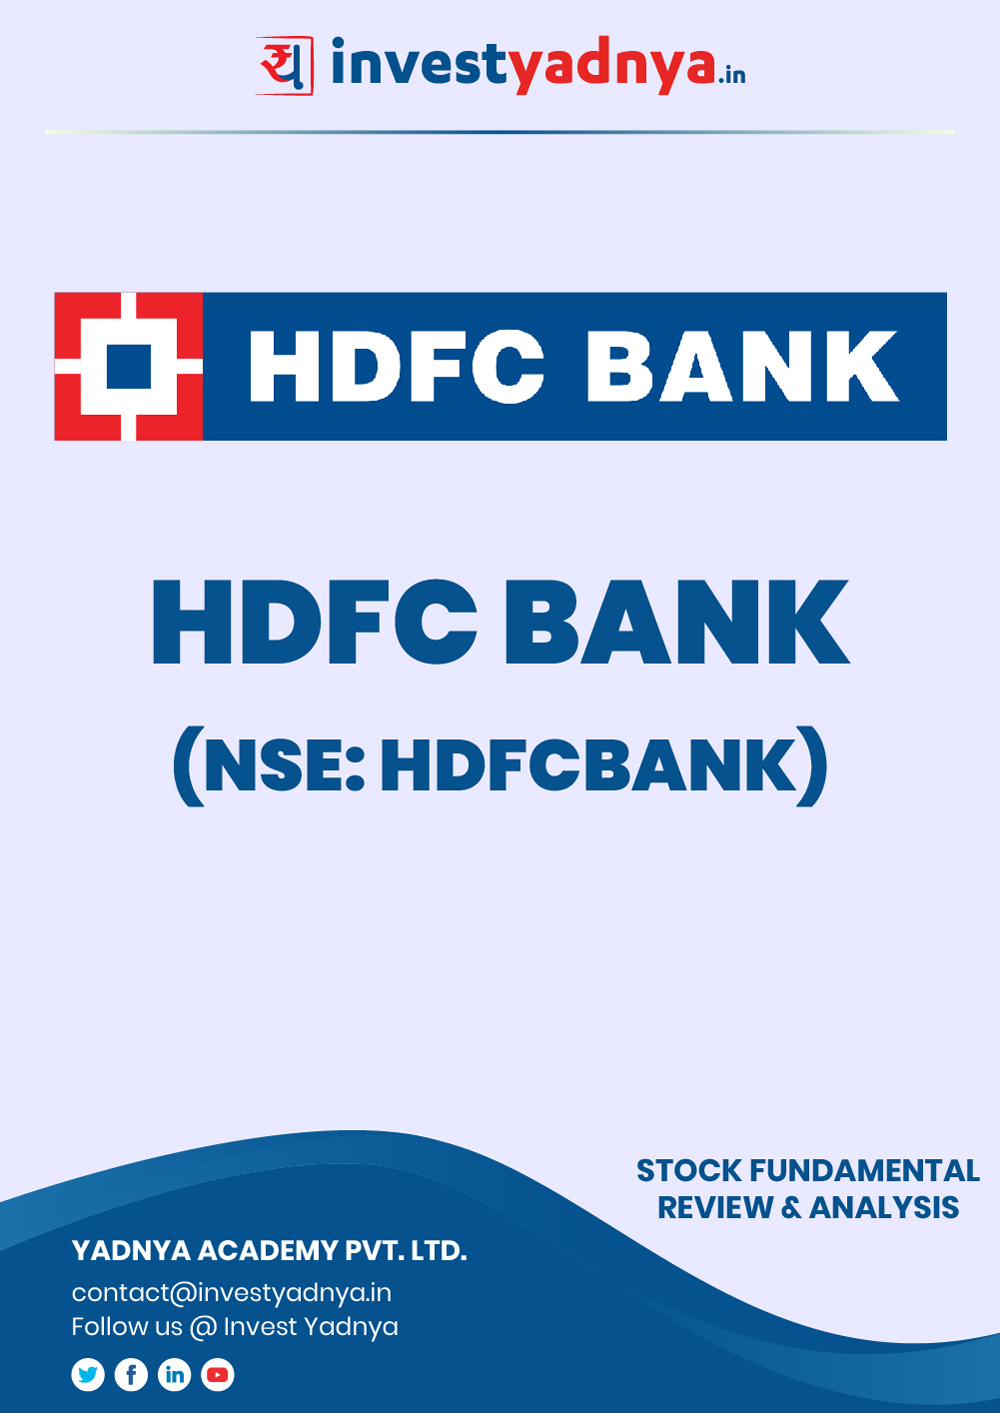 This e-book contains in-depth fundamental analysis of HDFC Bank Ltd considering both Financial and Equity Research Parameters. It reviews the company, industry, competitors, shareholding pattern, financials, governance and annual performance. ✔ Detailed Research ✔ Quality Reports